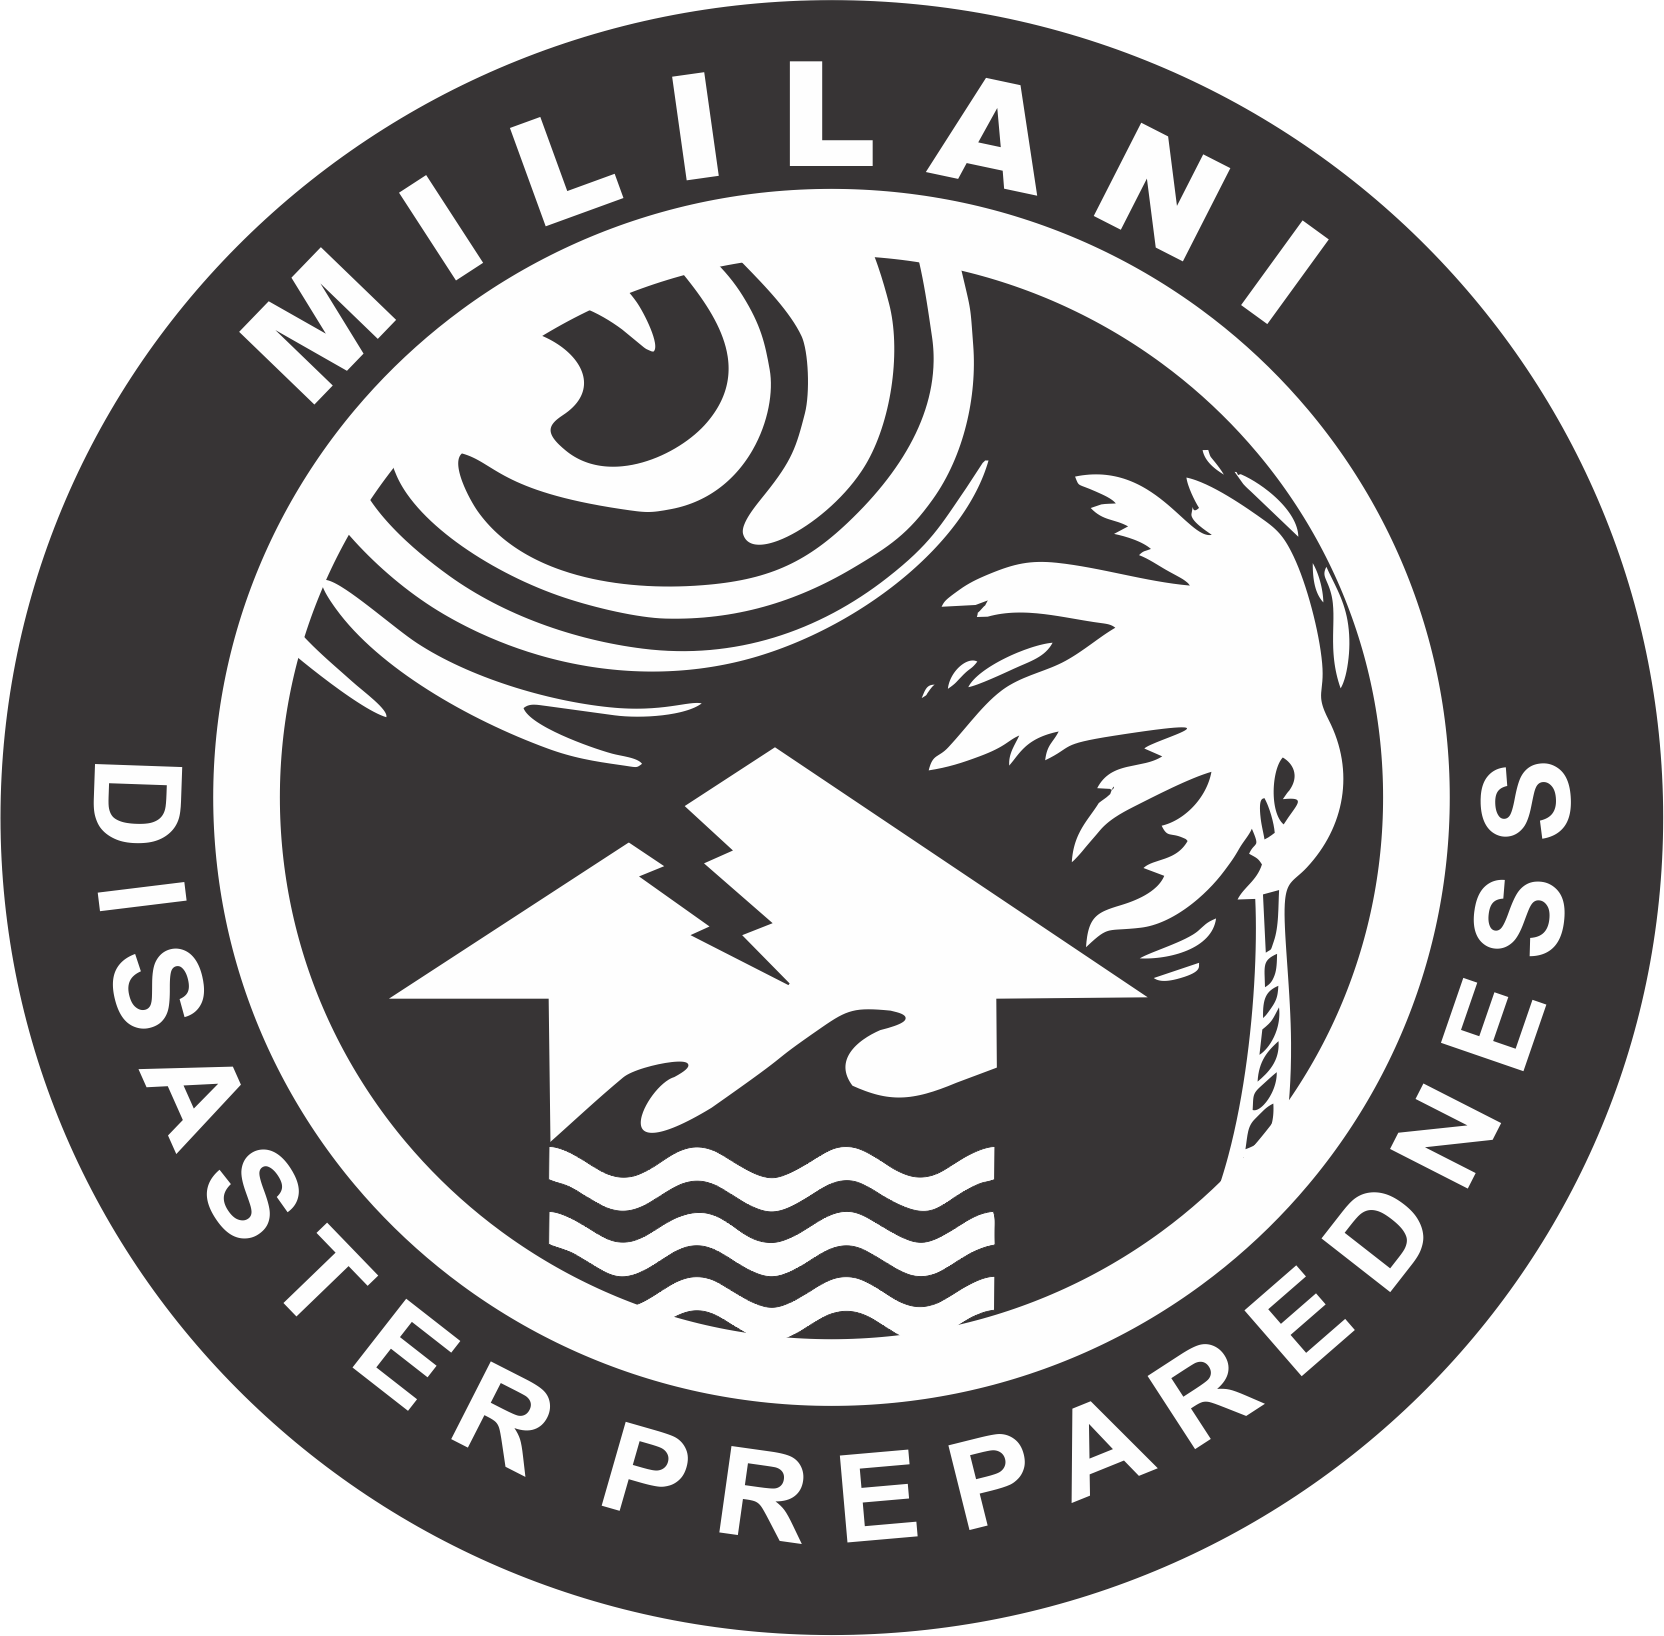 Mililani Disaster Preparedness Team